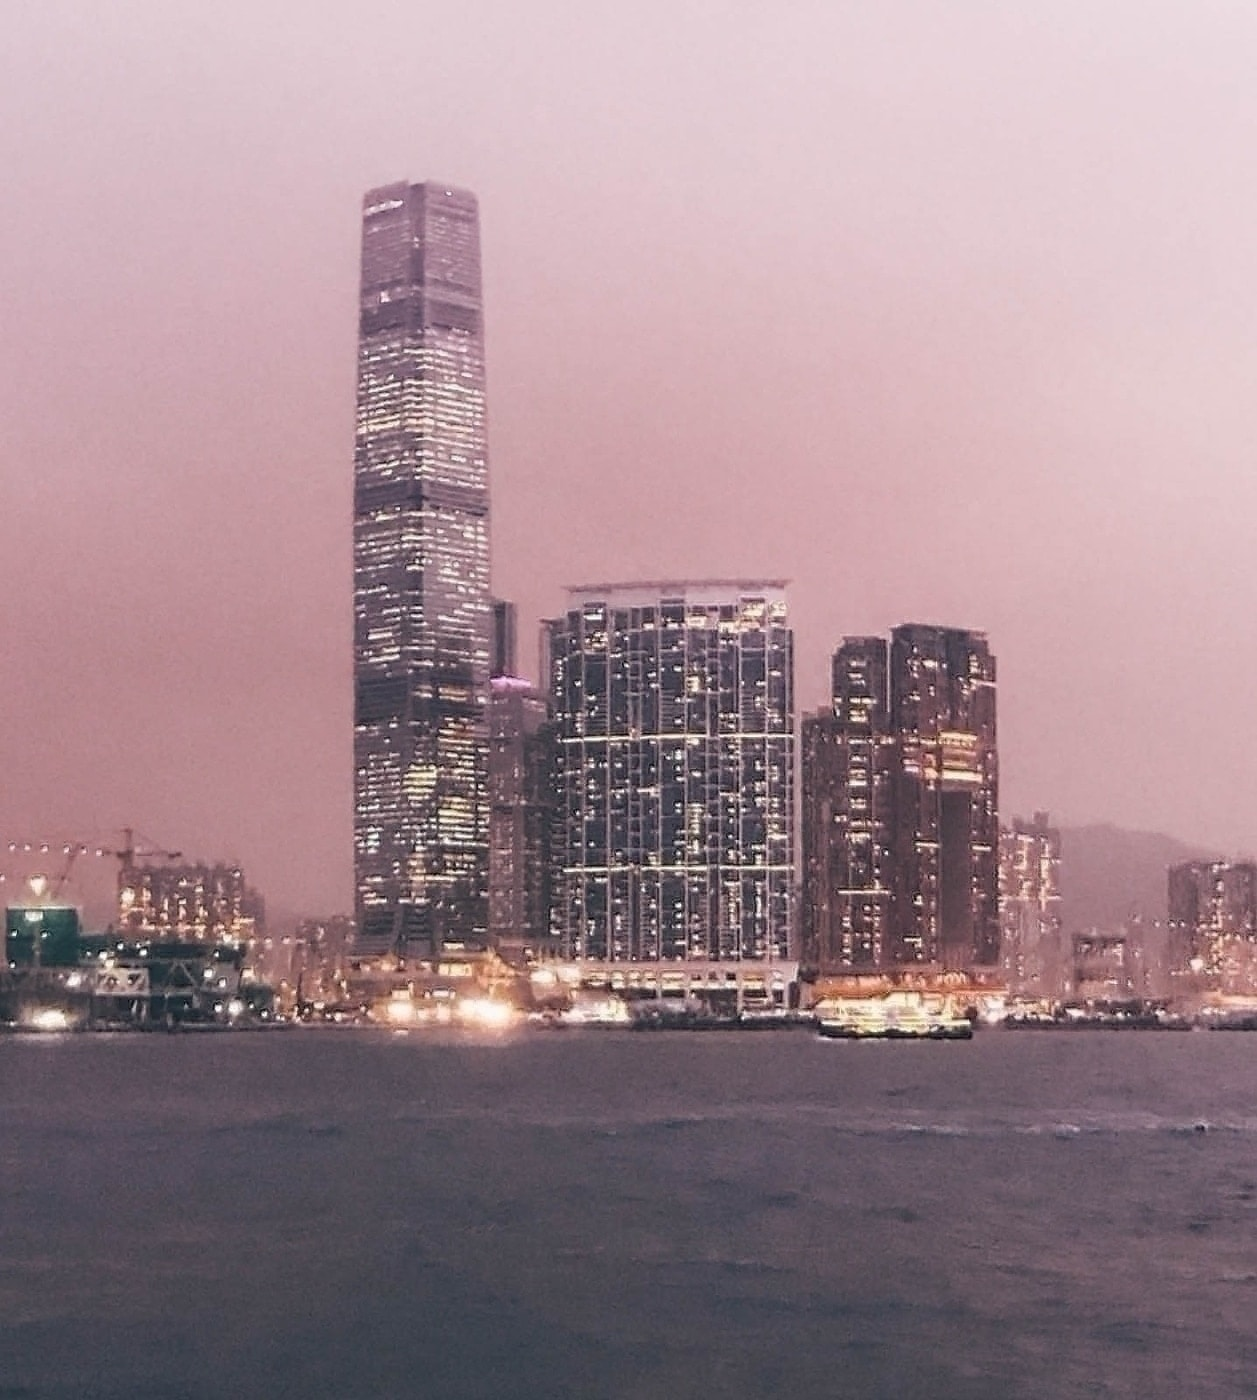 View from the Kowloon Ferry